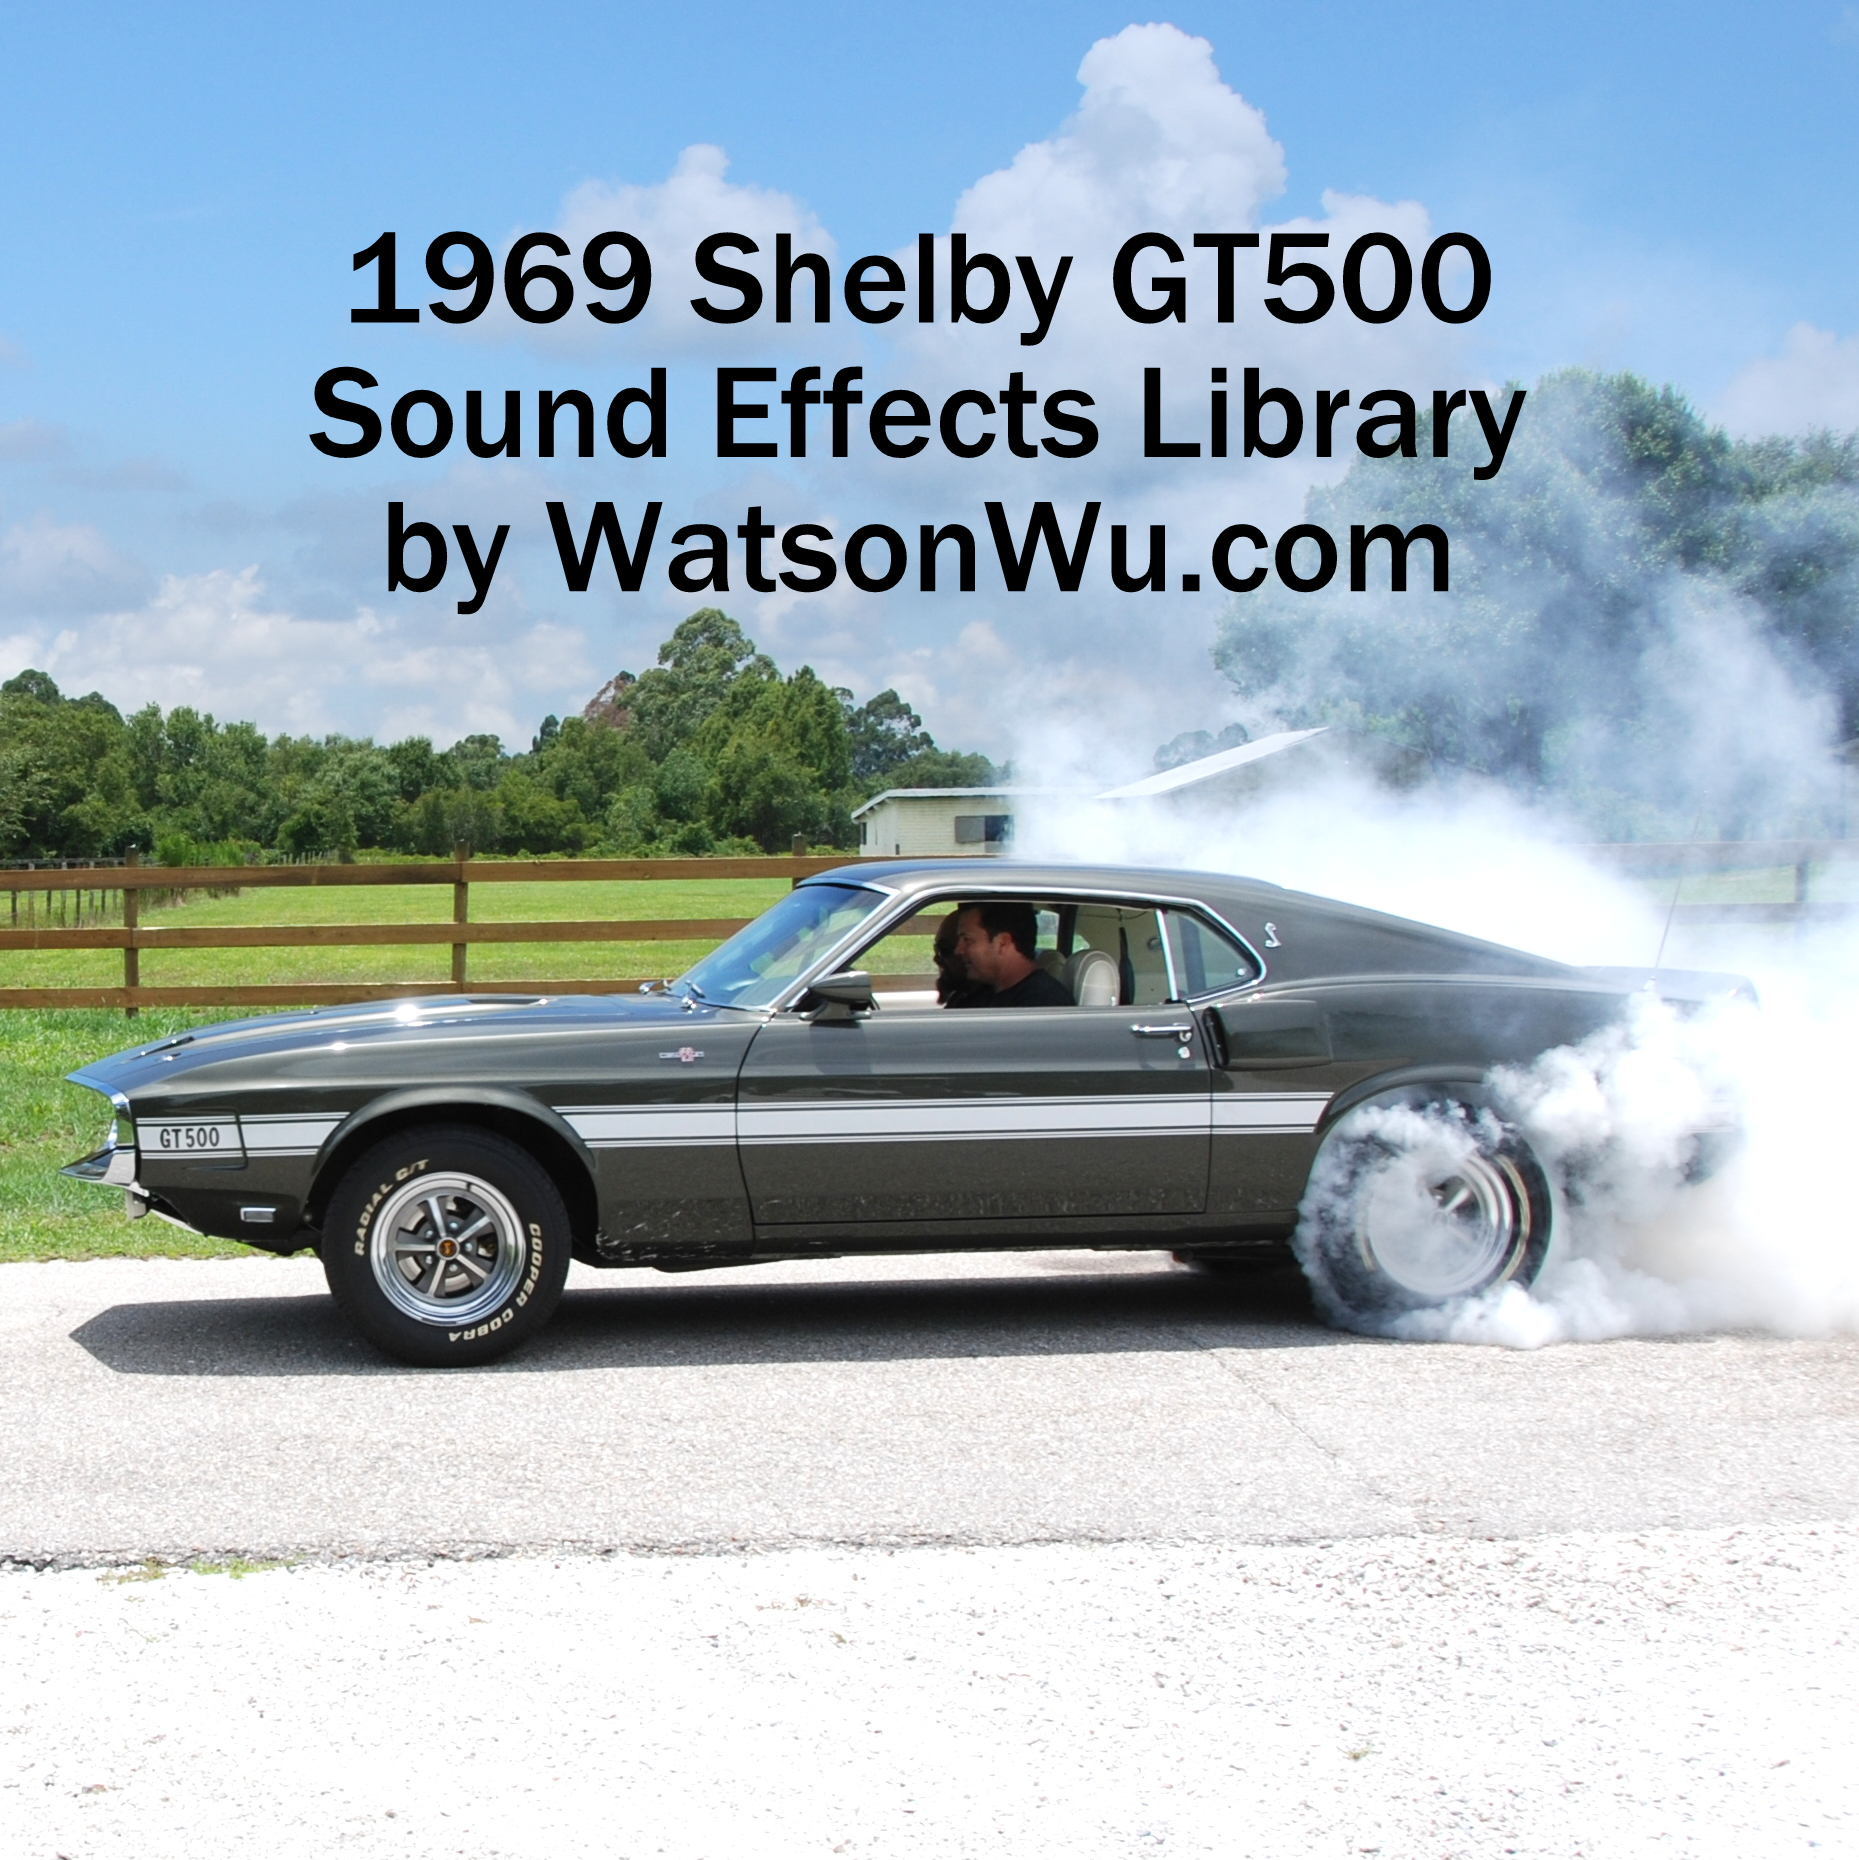 69 ford mustang shelby gt500 sfx library watson wu dot com